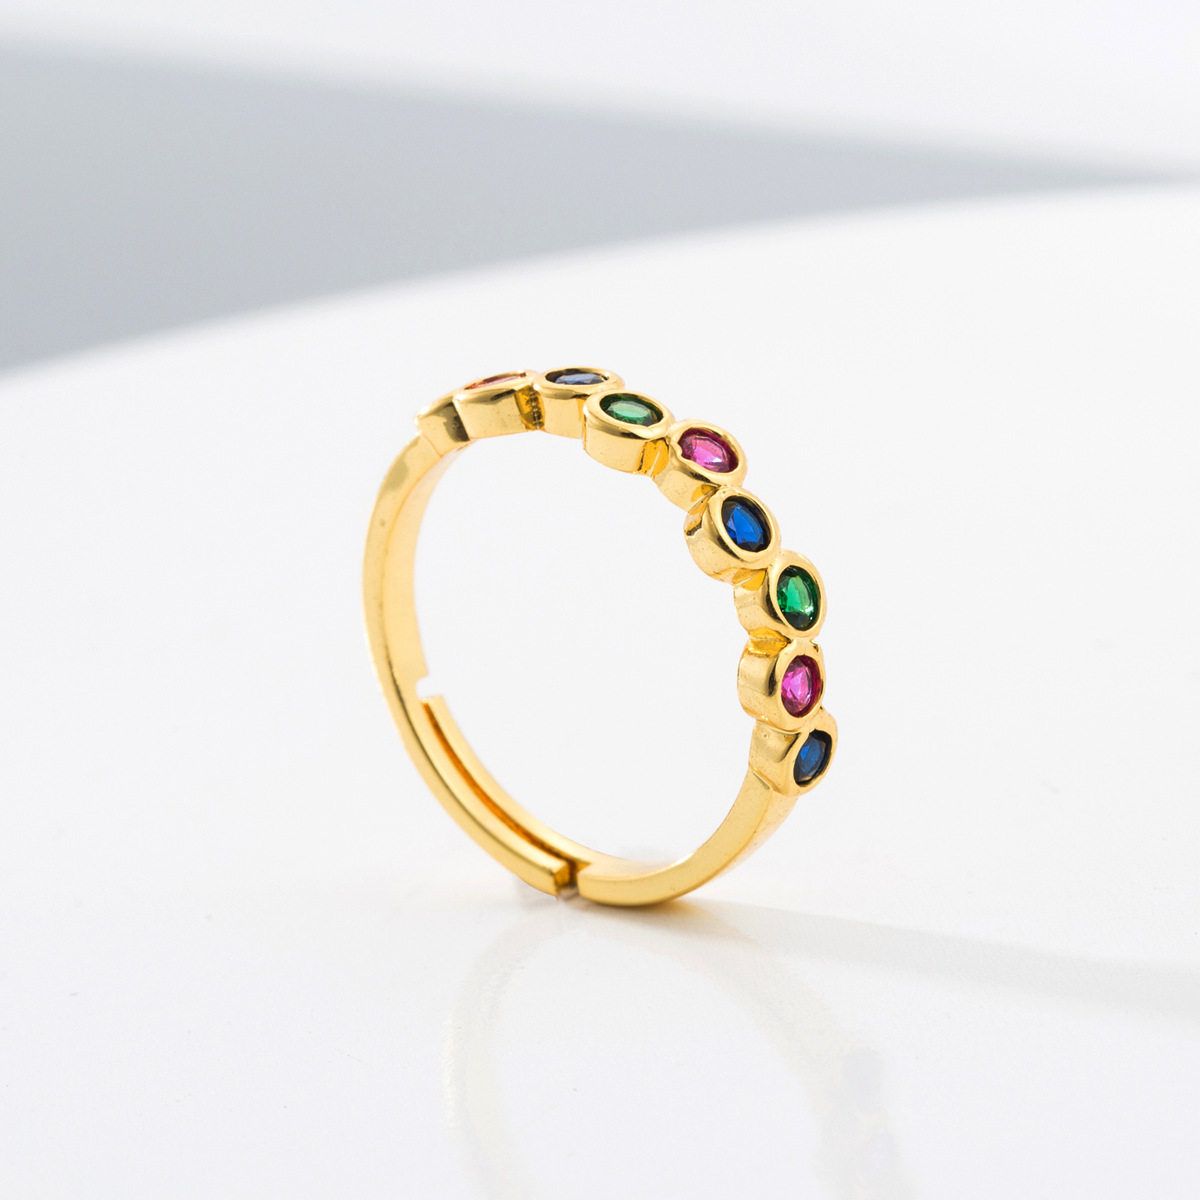 New Baguette Adjustable Colorful Cubic Zirconia Engagement Band Ring Gold Filled Rainbow CZ Ring